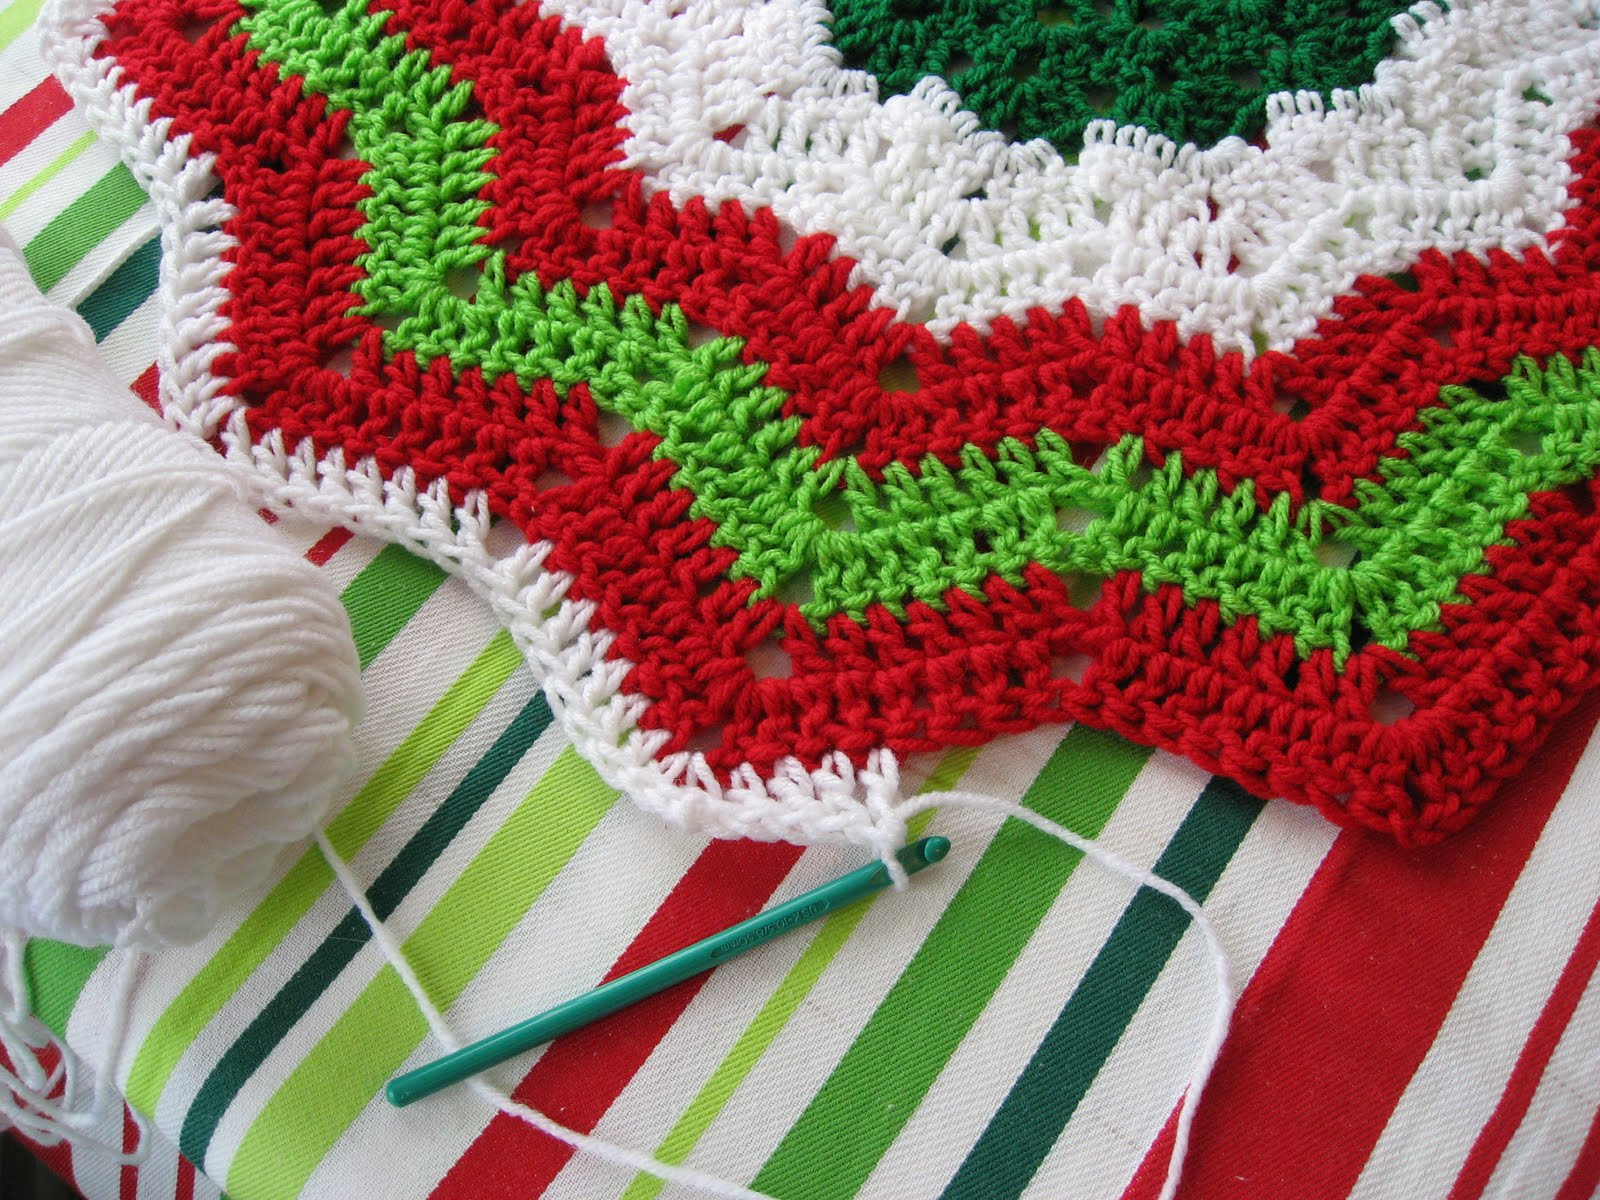 Crochet Patterns Xmas : Free Crochet Christmas Tree Pattern - Crochet Club